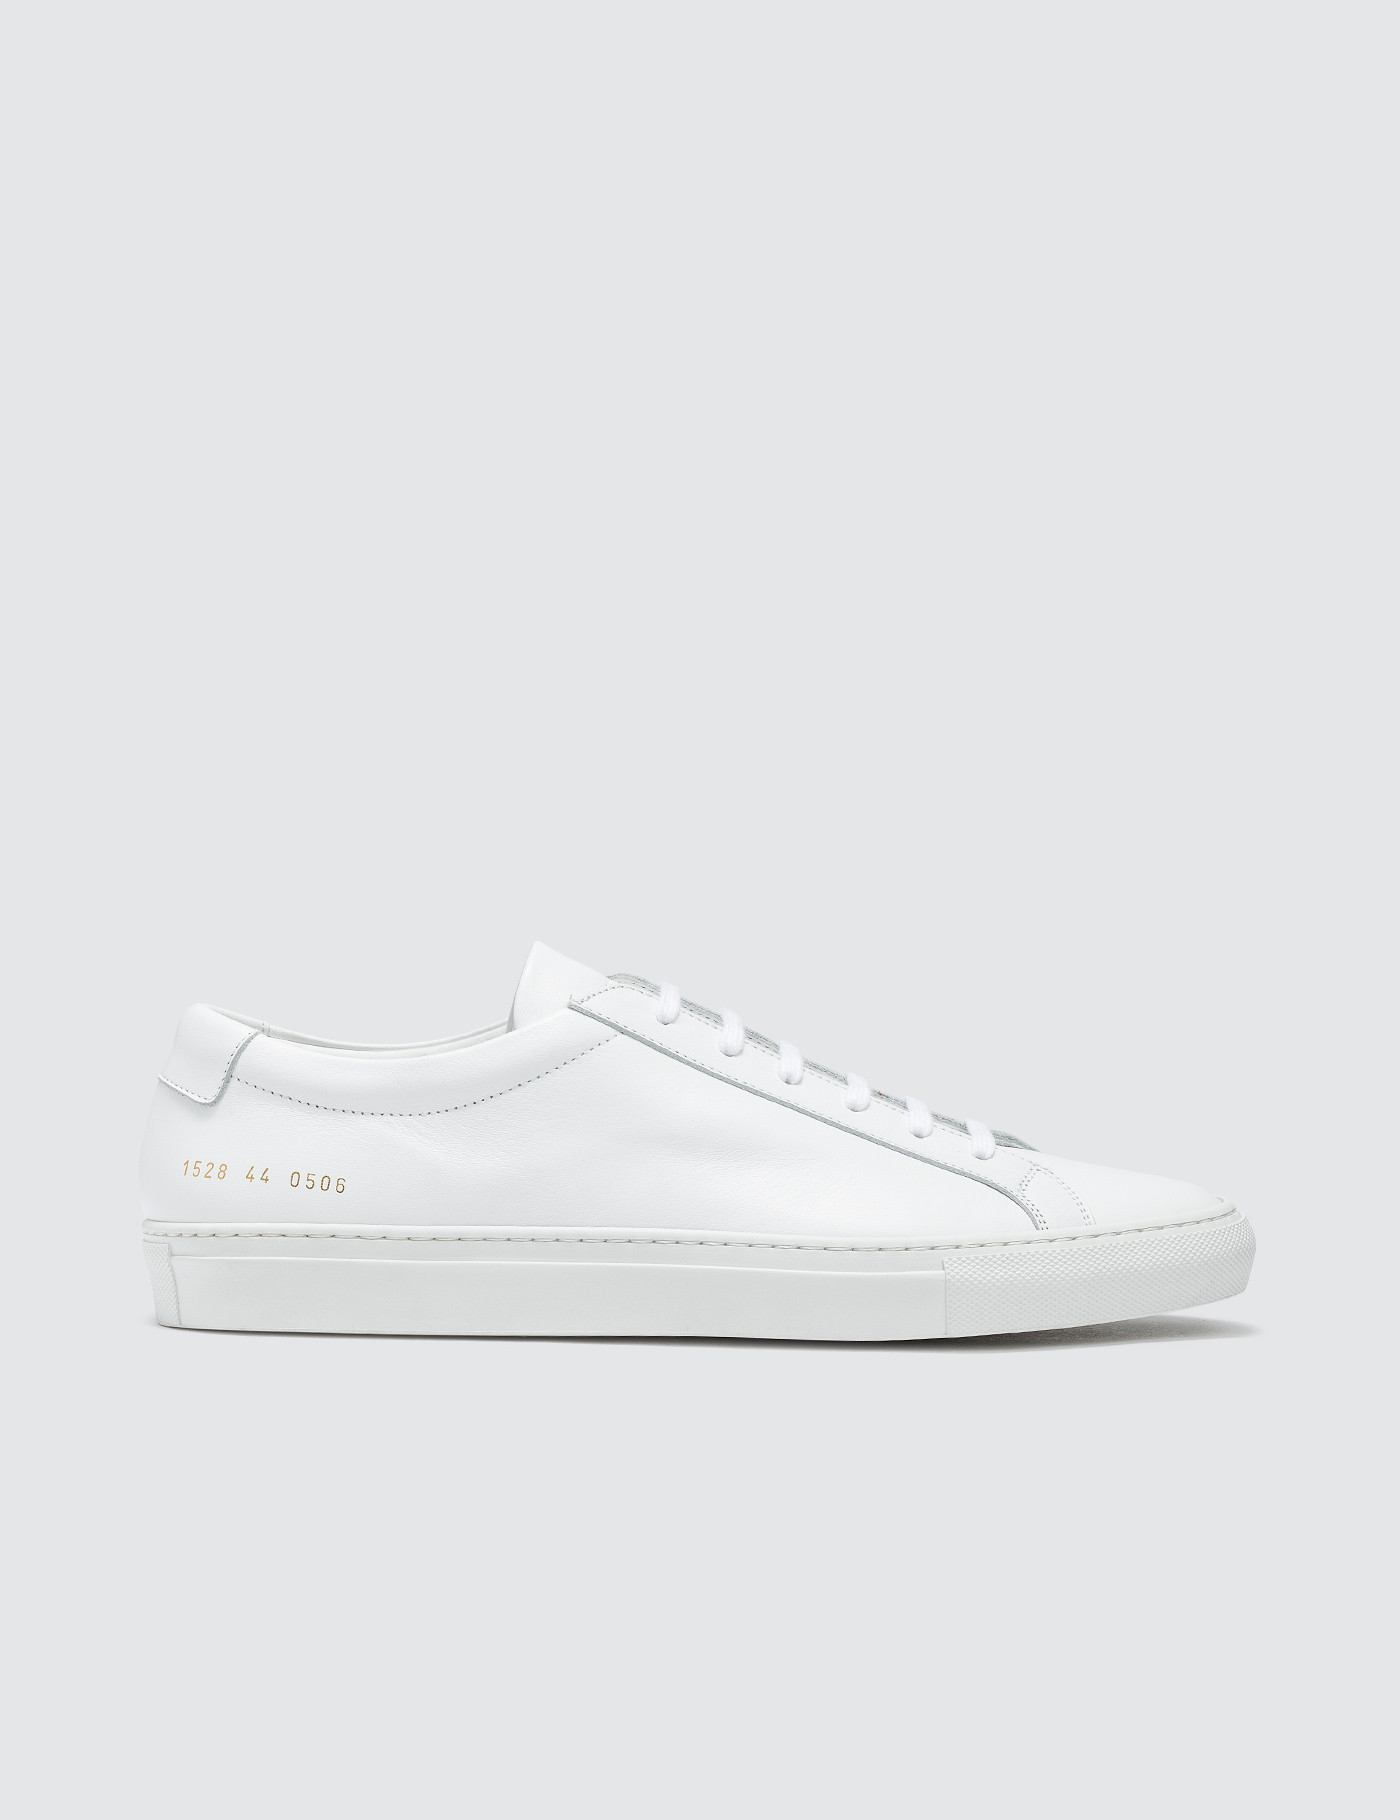 cccf9efb79670 Buy Original Common Projects Original Achilles Low Sneaker at ...